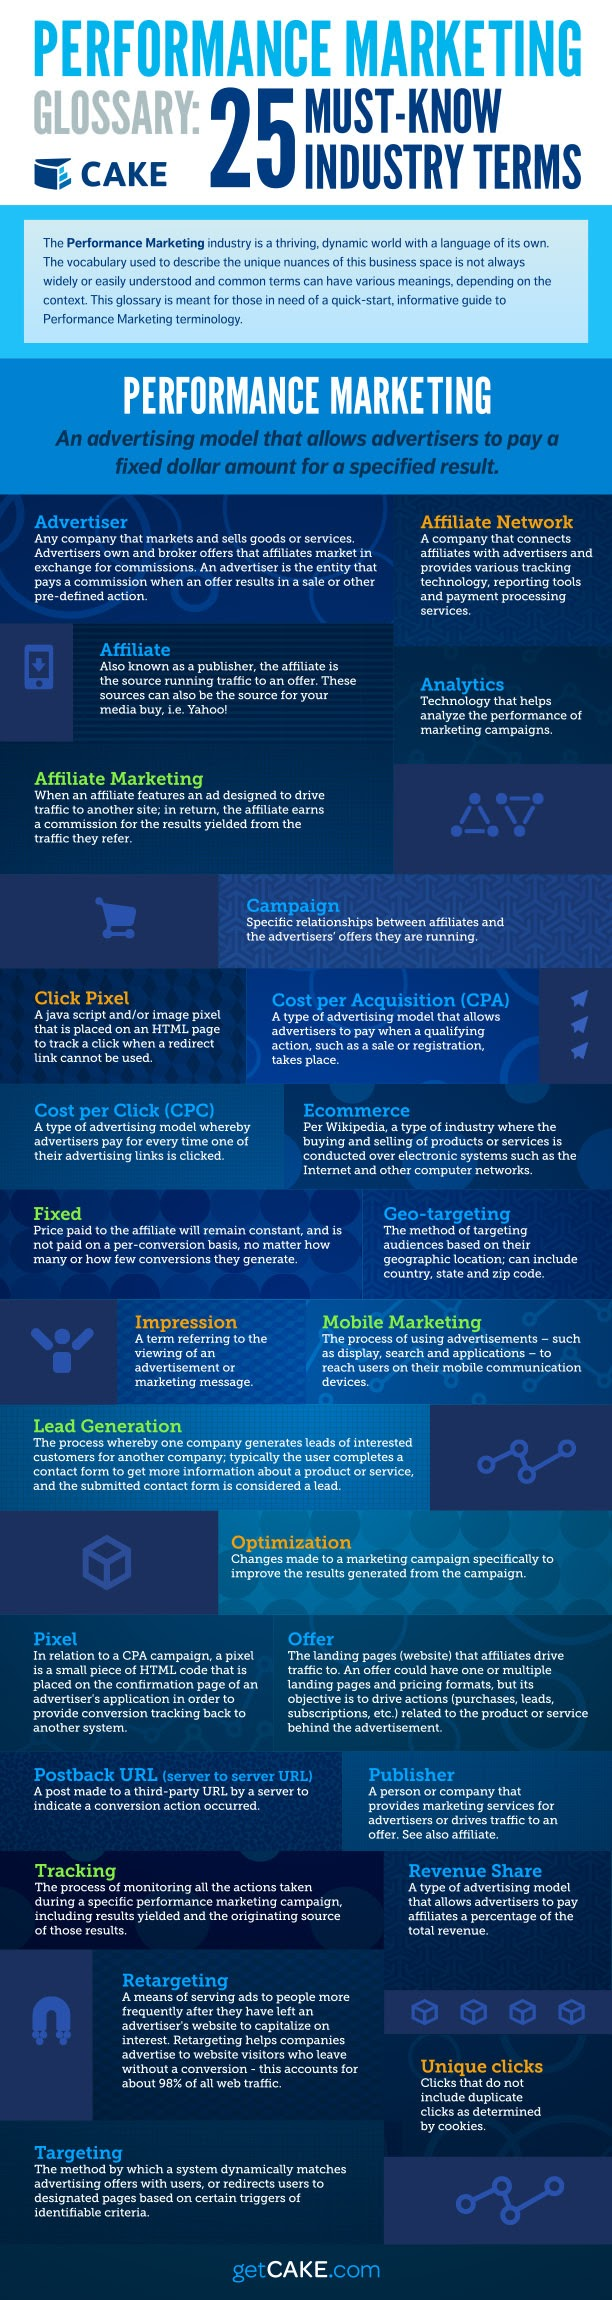 Performance Marketing Glossary: 25 Must Know Industry Terms - #Infographic